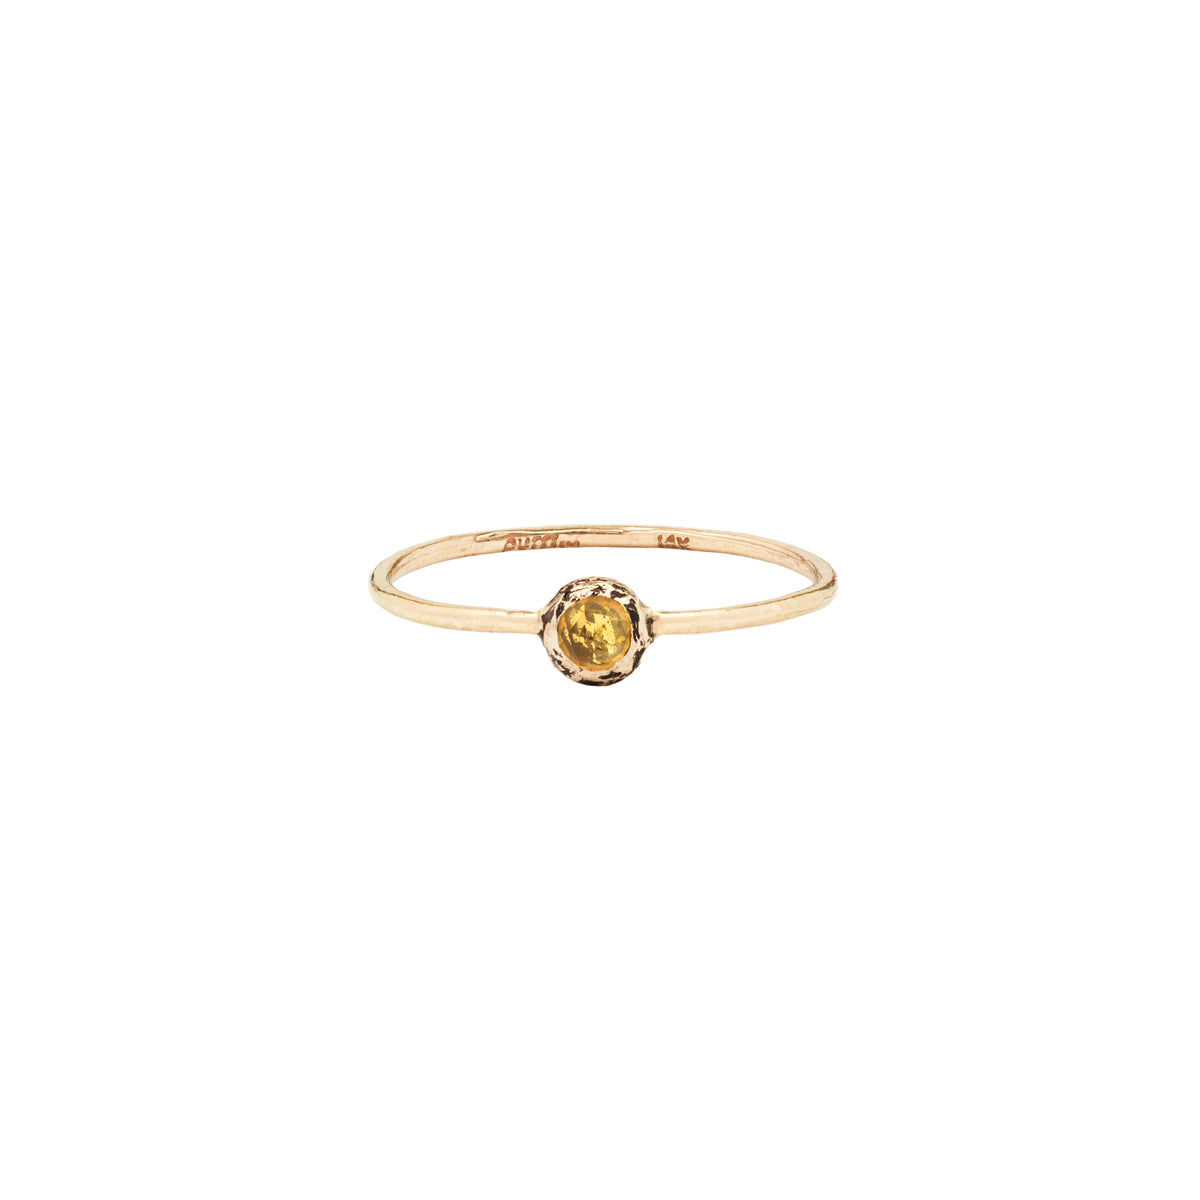 Yellow Montana Sapphire Stone Set 14K Gold Ring